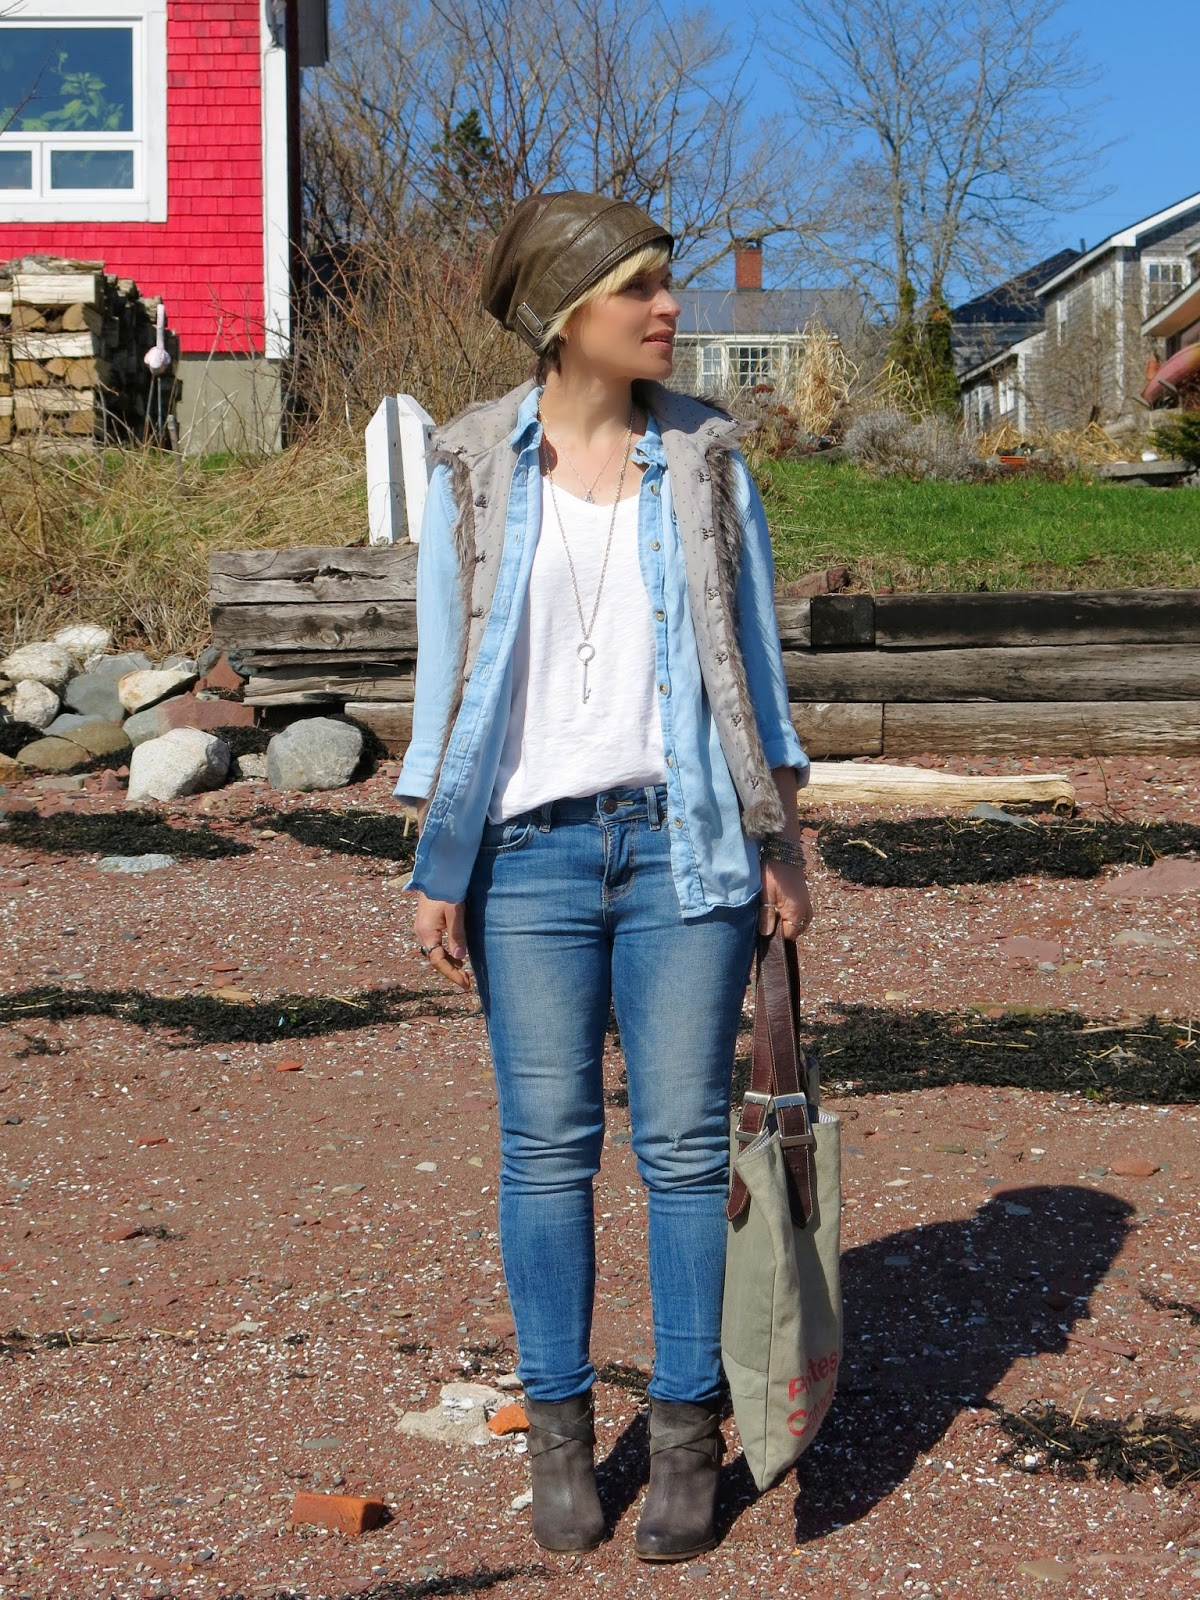 styling denim skinnies with white tee, chambray shirt, furry vest and leather beanie